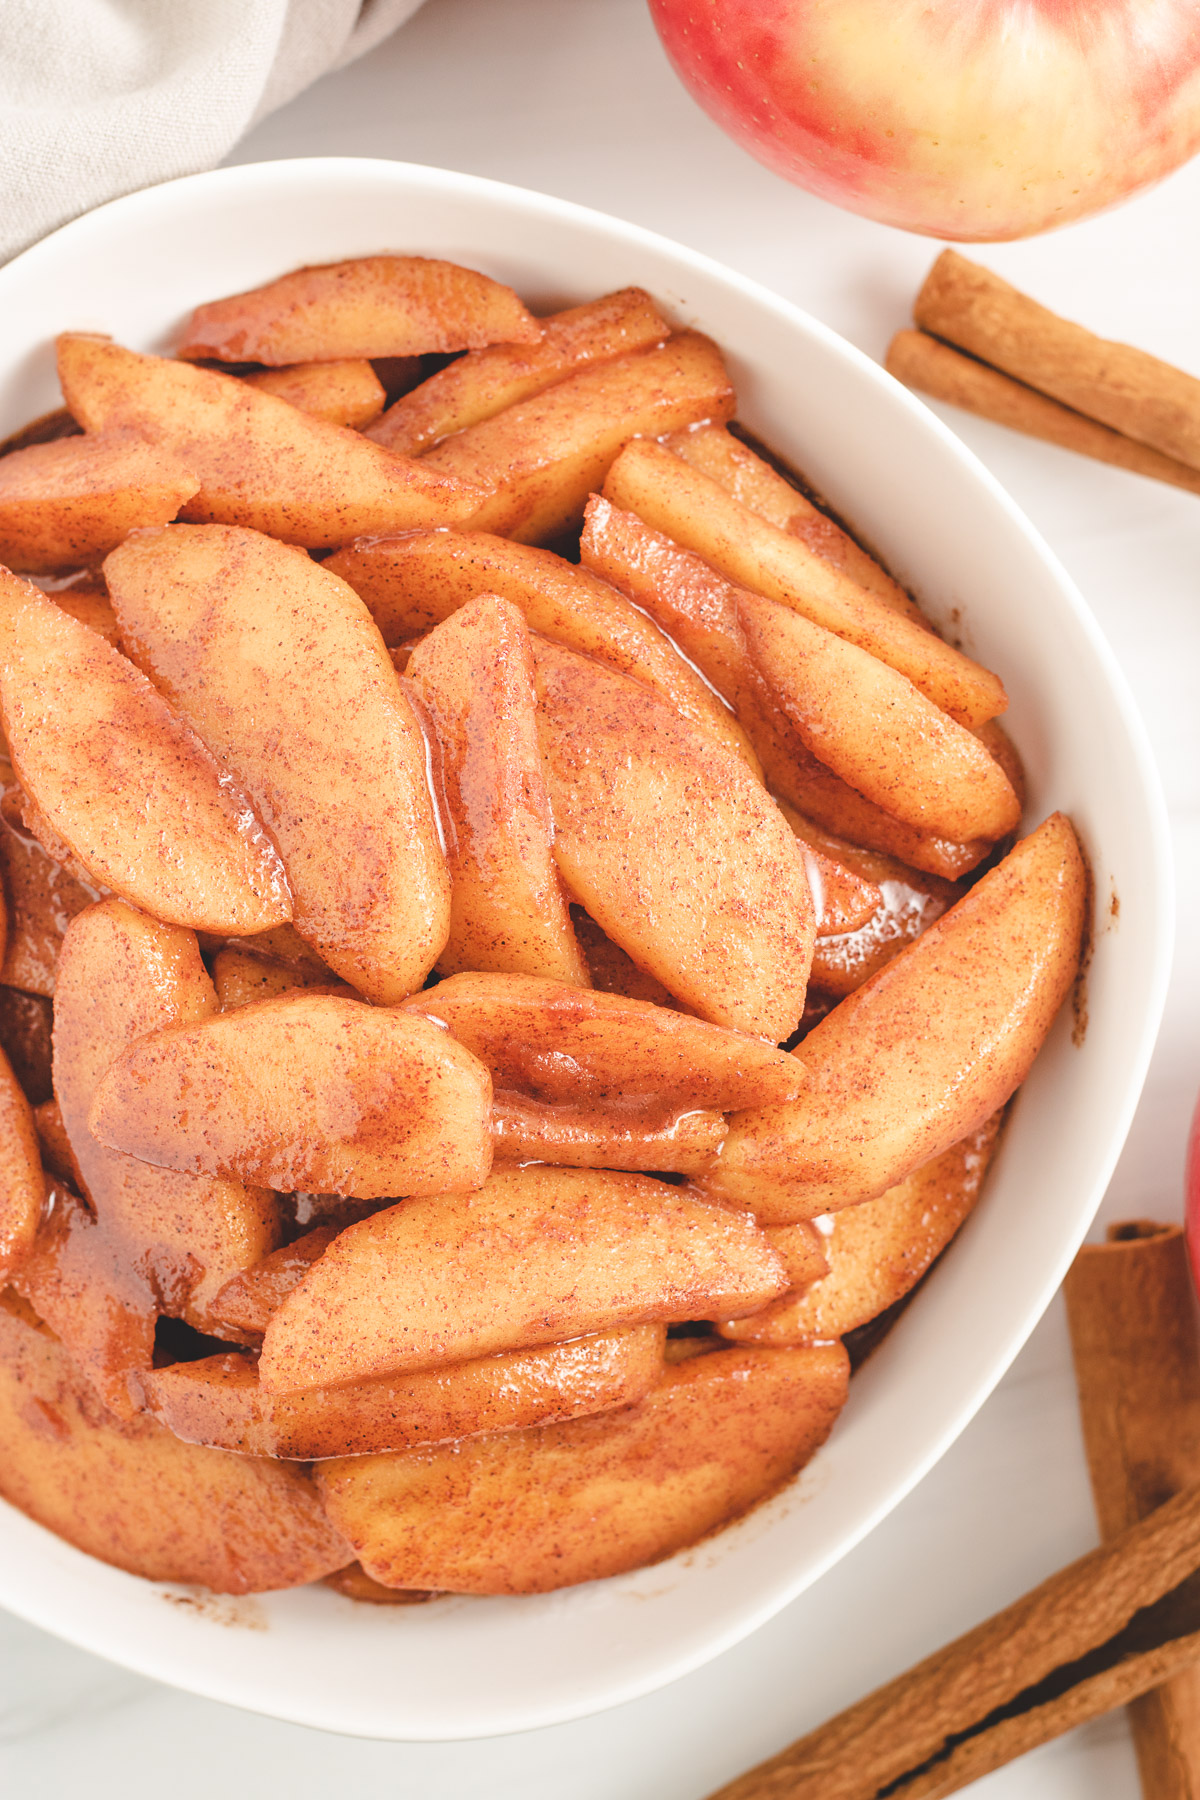 Top down view of cinnamon apples in a white bowl.